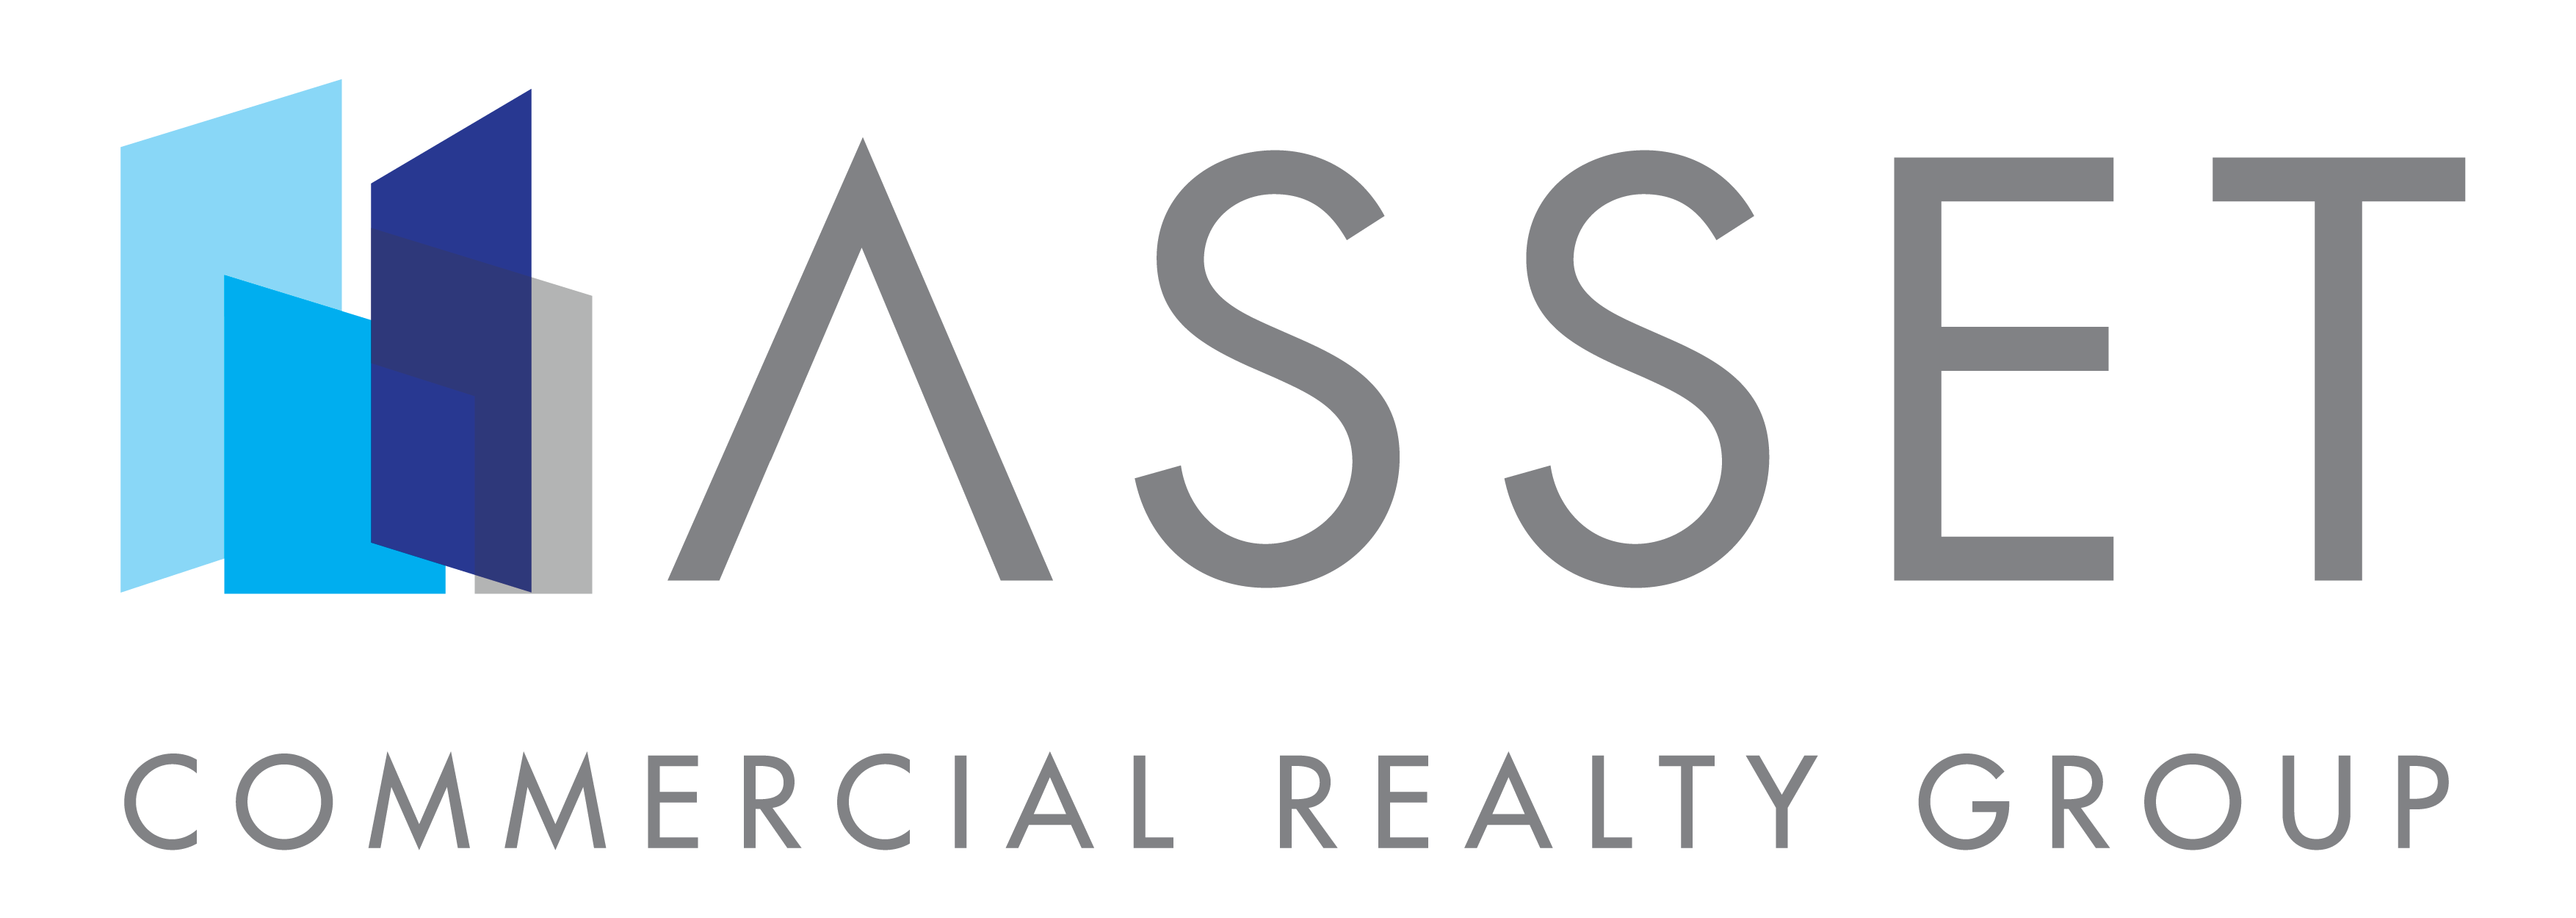 Asset Commercial Realty Group Logo